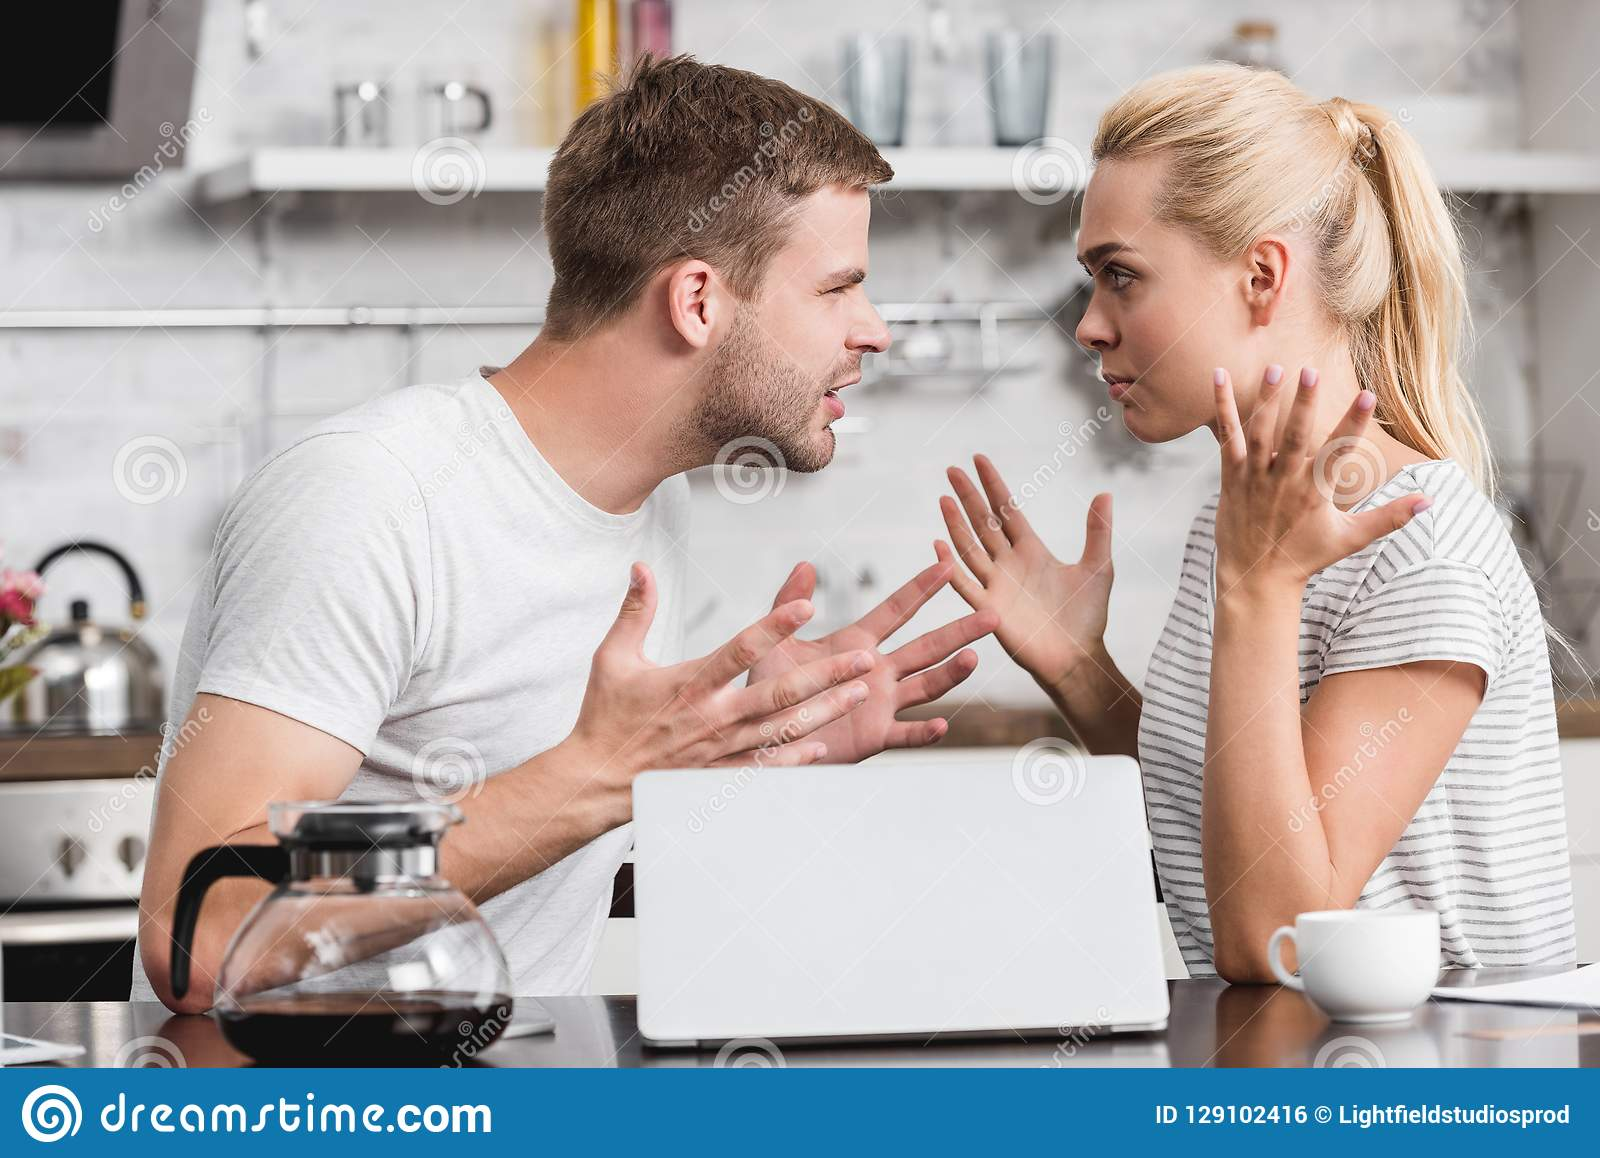 side view of emotional young couple arguing and looking at each other in kitchen relationship difficulties